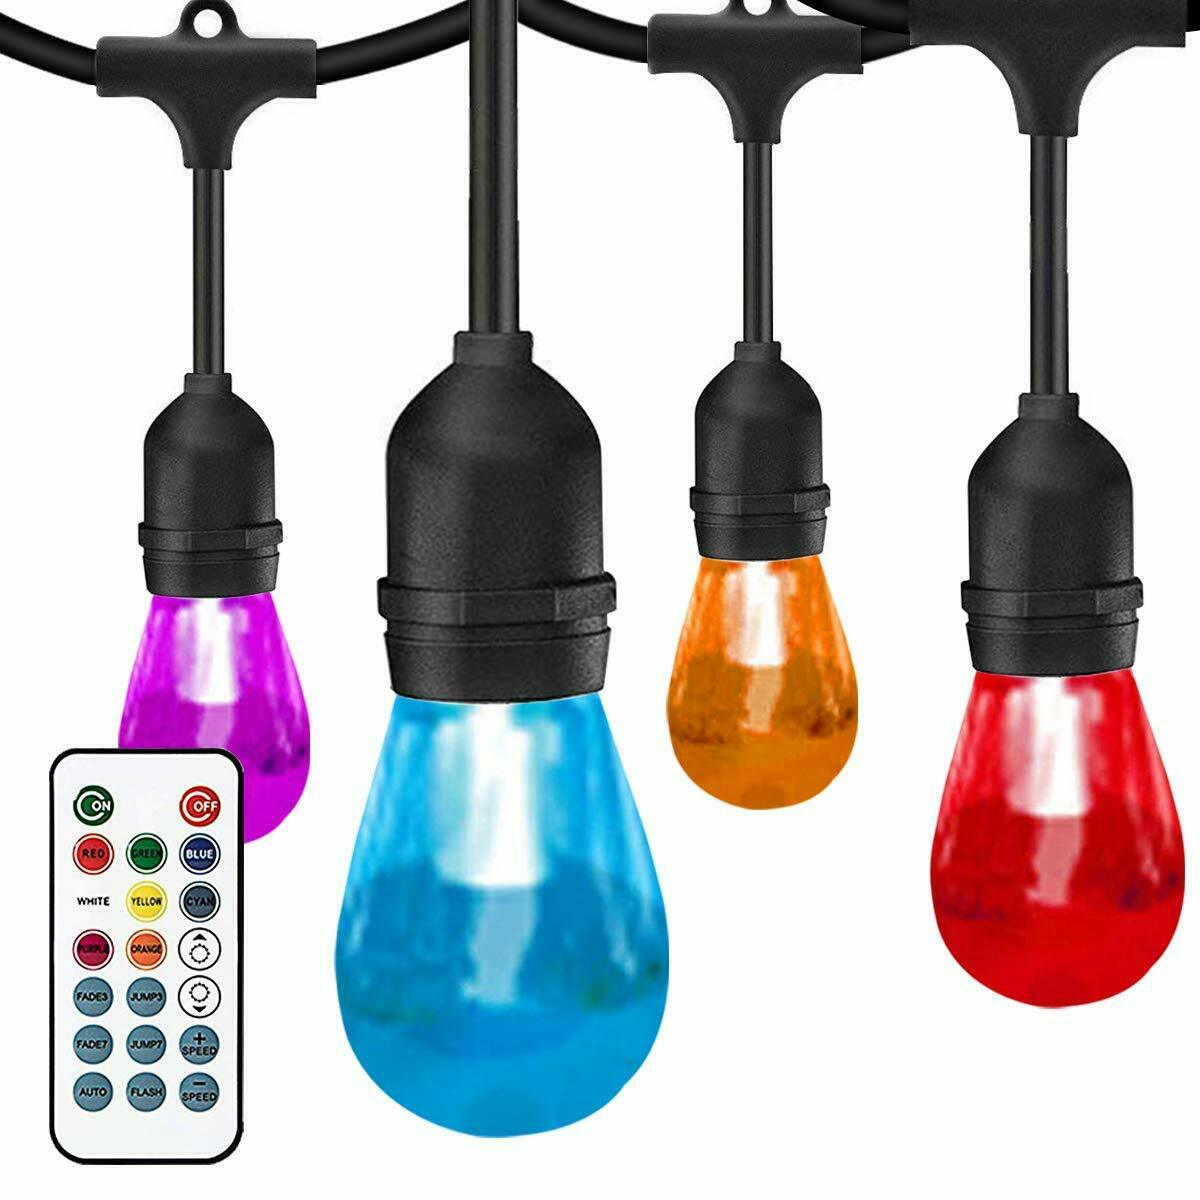 Cadena De Luces al aire libre sunthin cambio de Color, luces de patio de 42ft, 15 Sockets